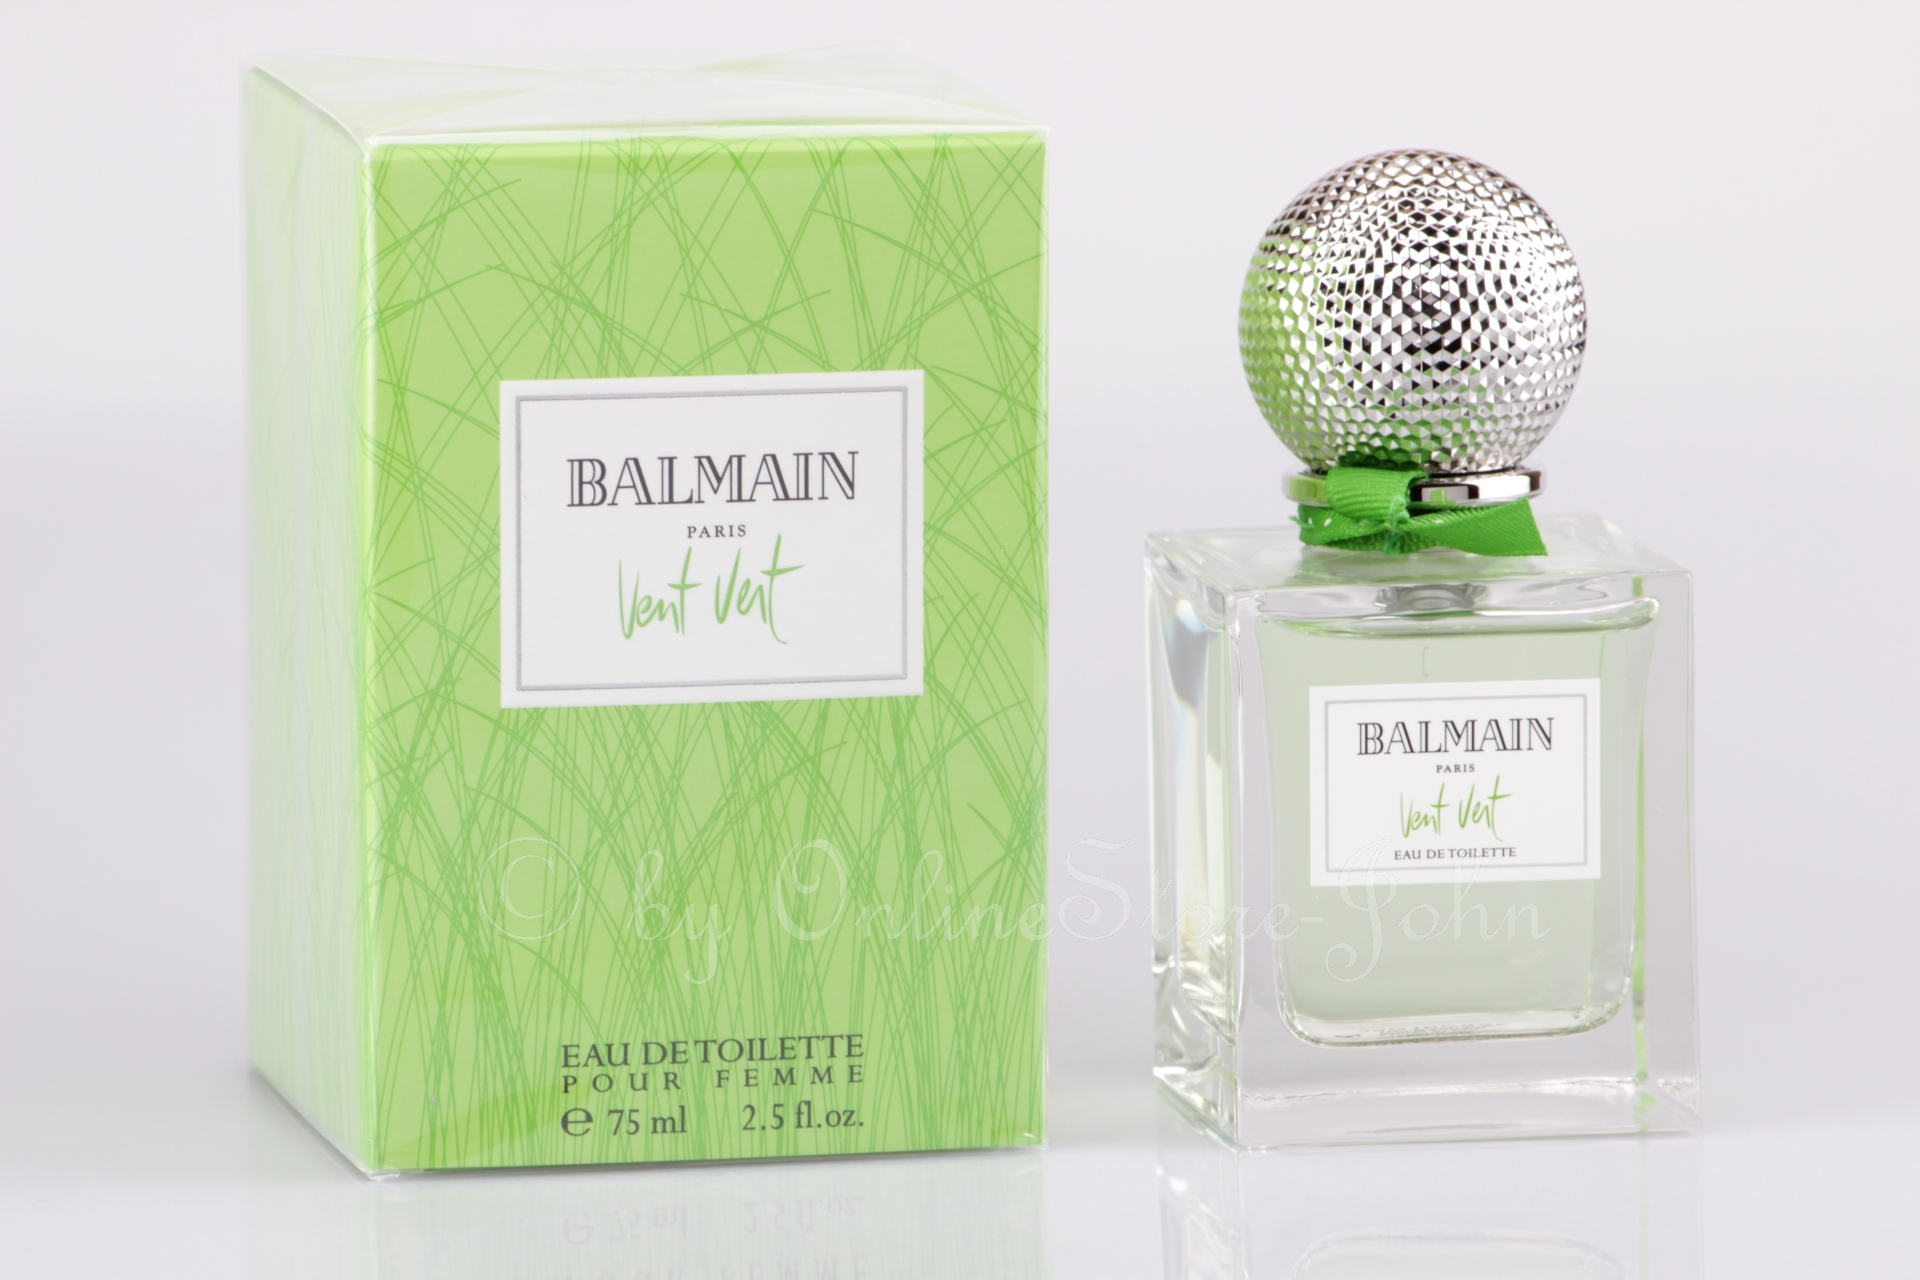 balmain vent vert pour femme 75 ml edt eau de toilette nip 689853765443 ebay. Black Bedroom Furniture Sets. Home Design Ideas